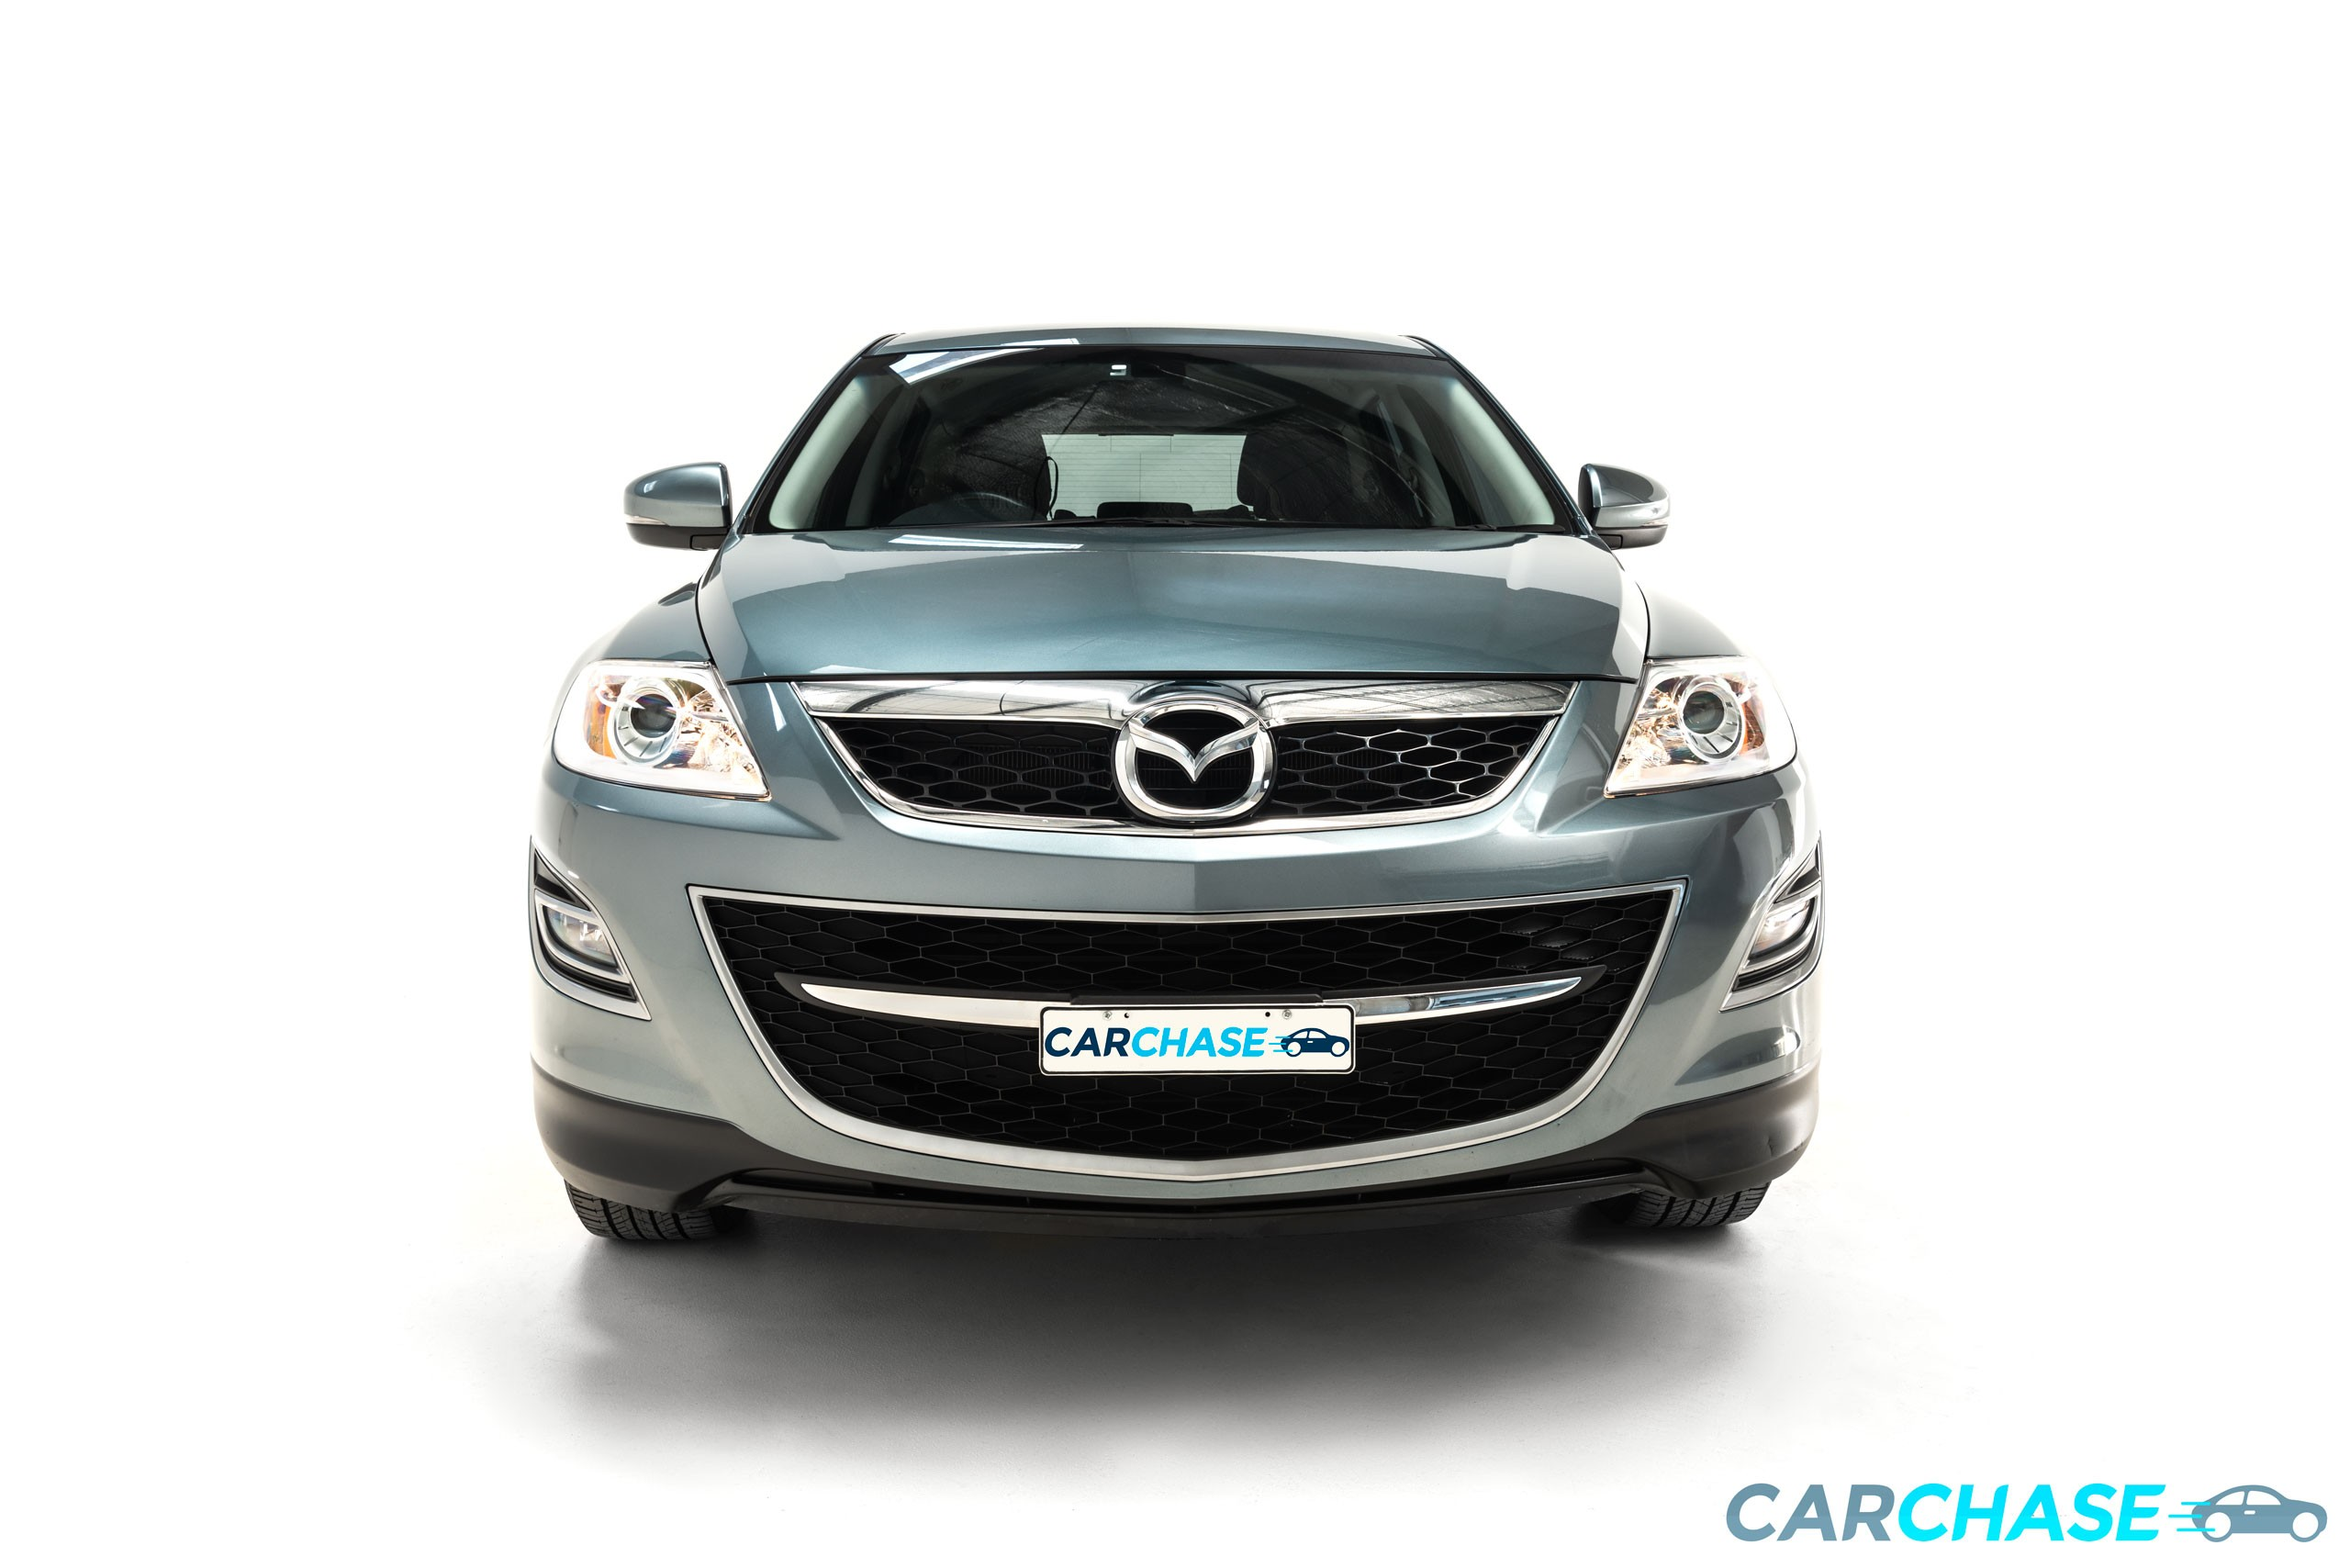 Image of front profile of 2012 Mazda CX-9 Classic TB4